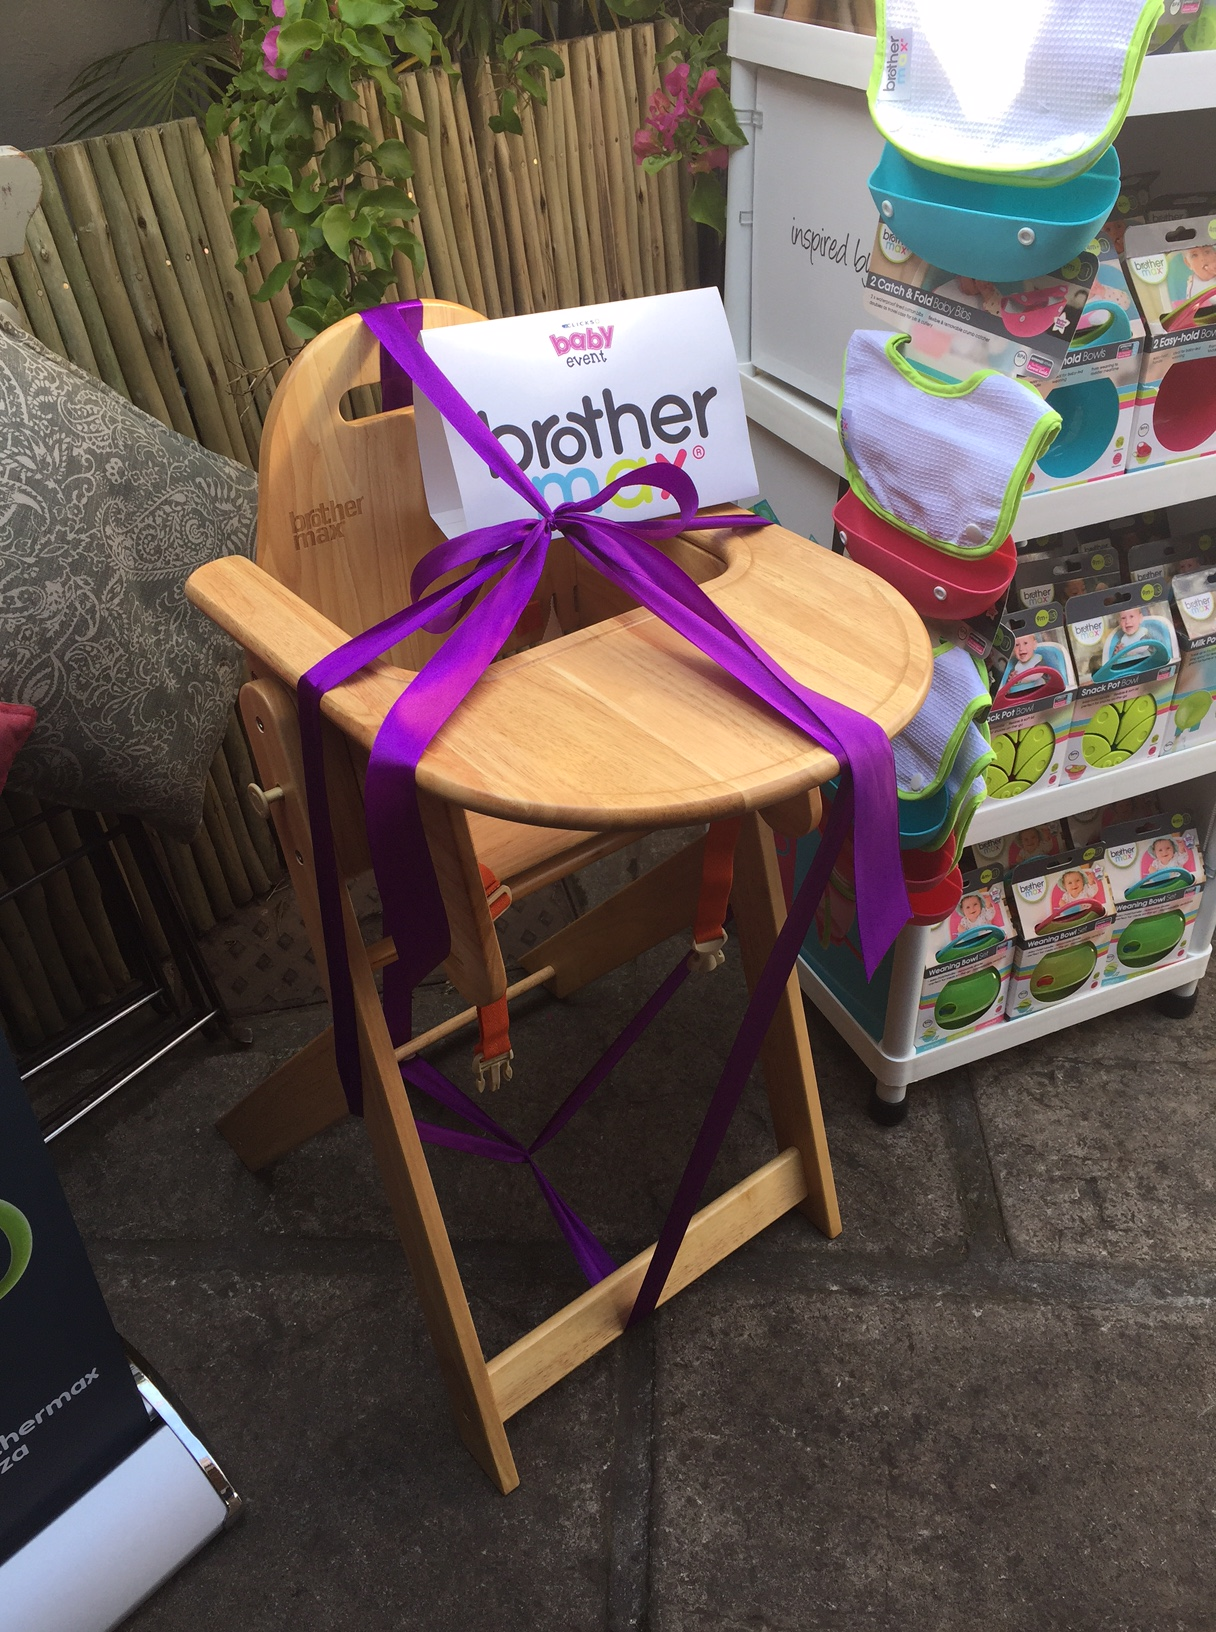 Cindy Alfino from 3kids2dogs1house was the lucky winner of this feeding high chair after a very unique taste challenge :)